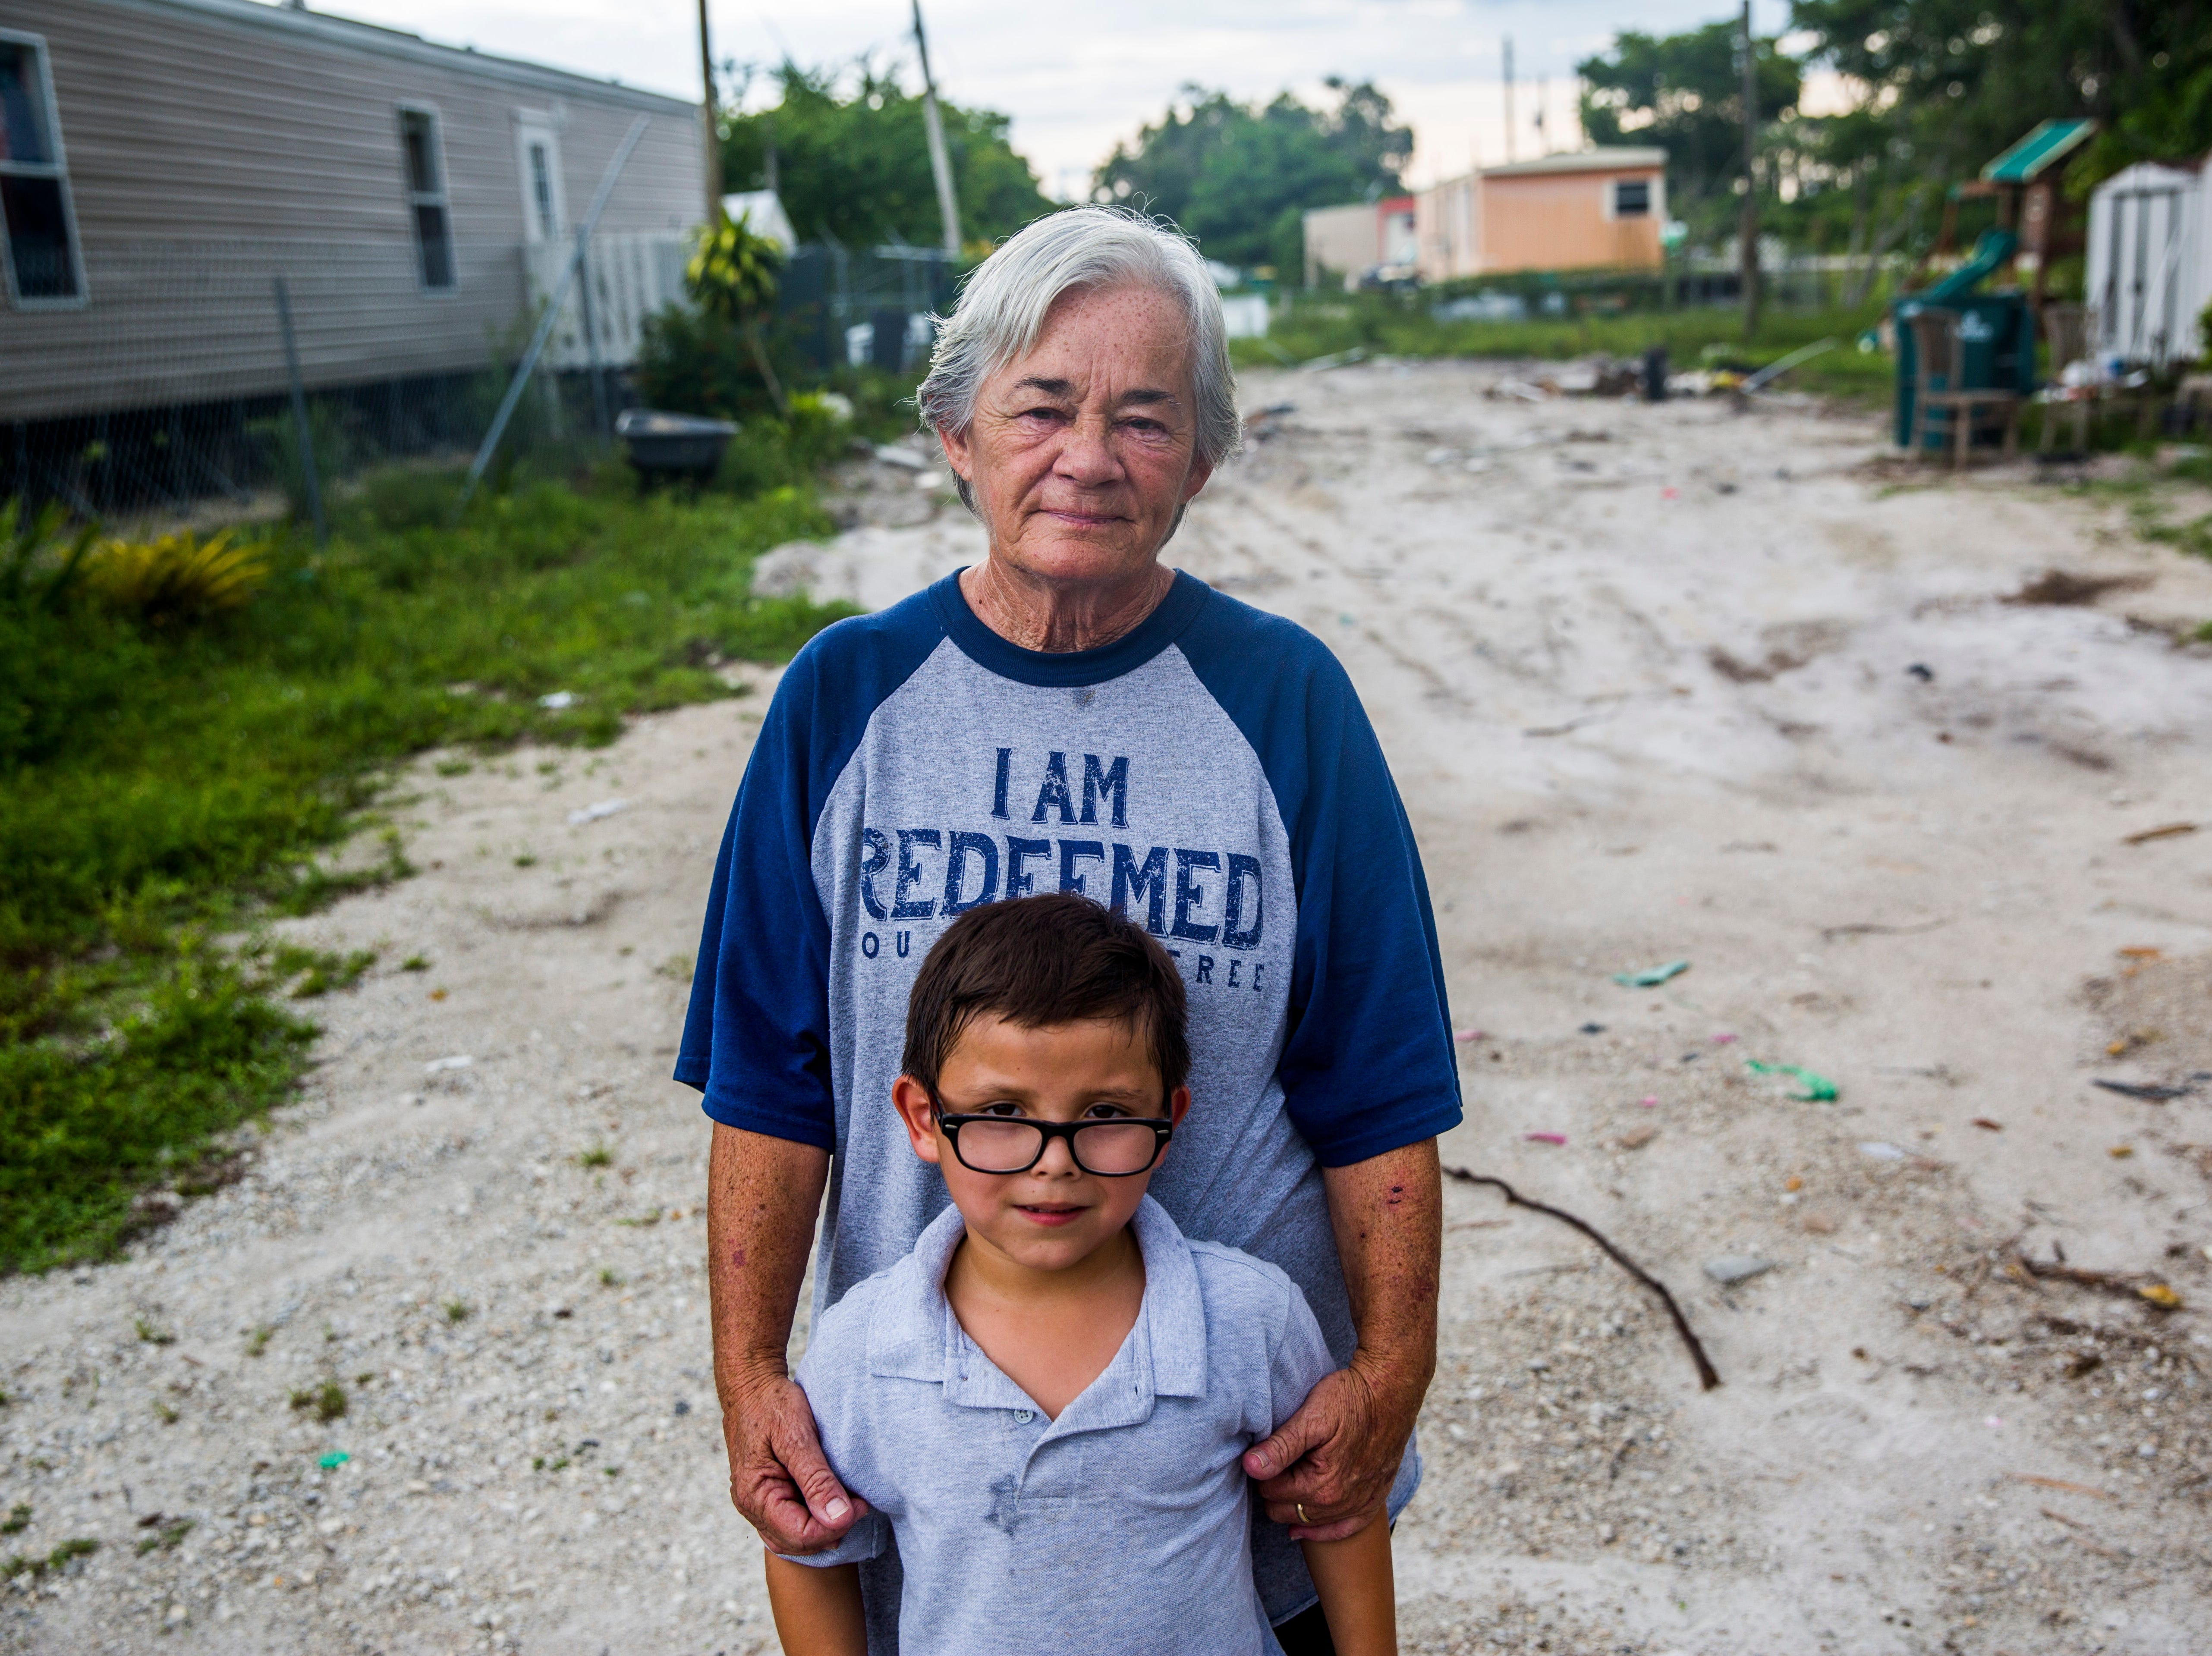 Debbie Coe, 62, and her great-nephew Casey Soto, 6, stand in front of the plot where their home used to be in Immokalee on Wednesday, Aug. 22, 2018.